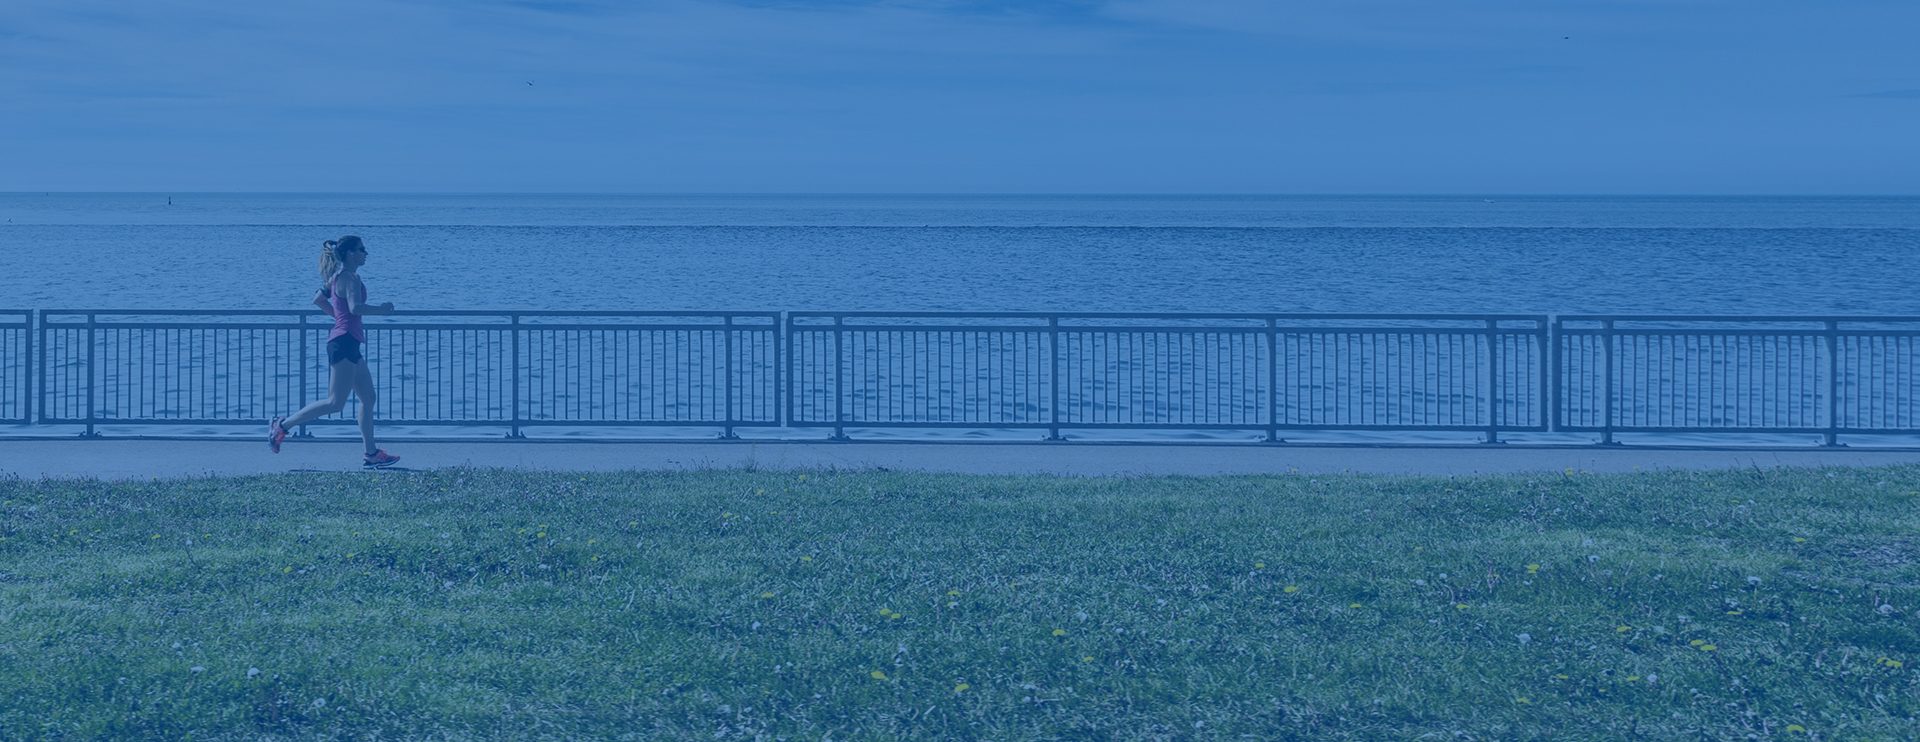 Woman running in a park area next to the ocean